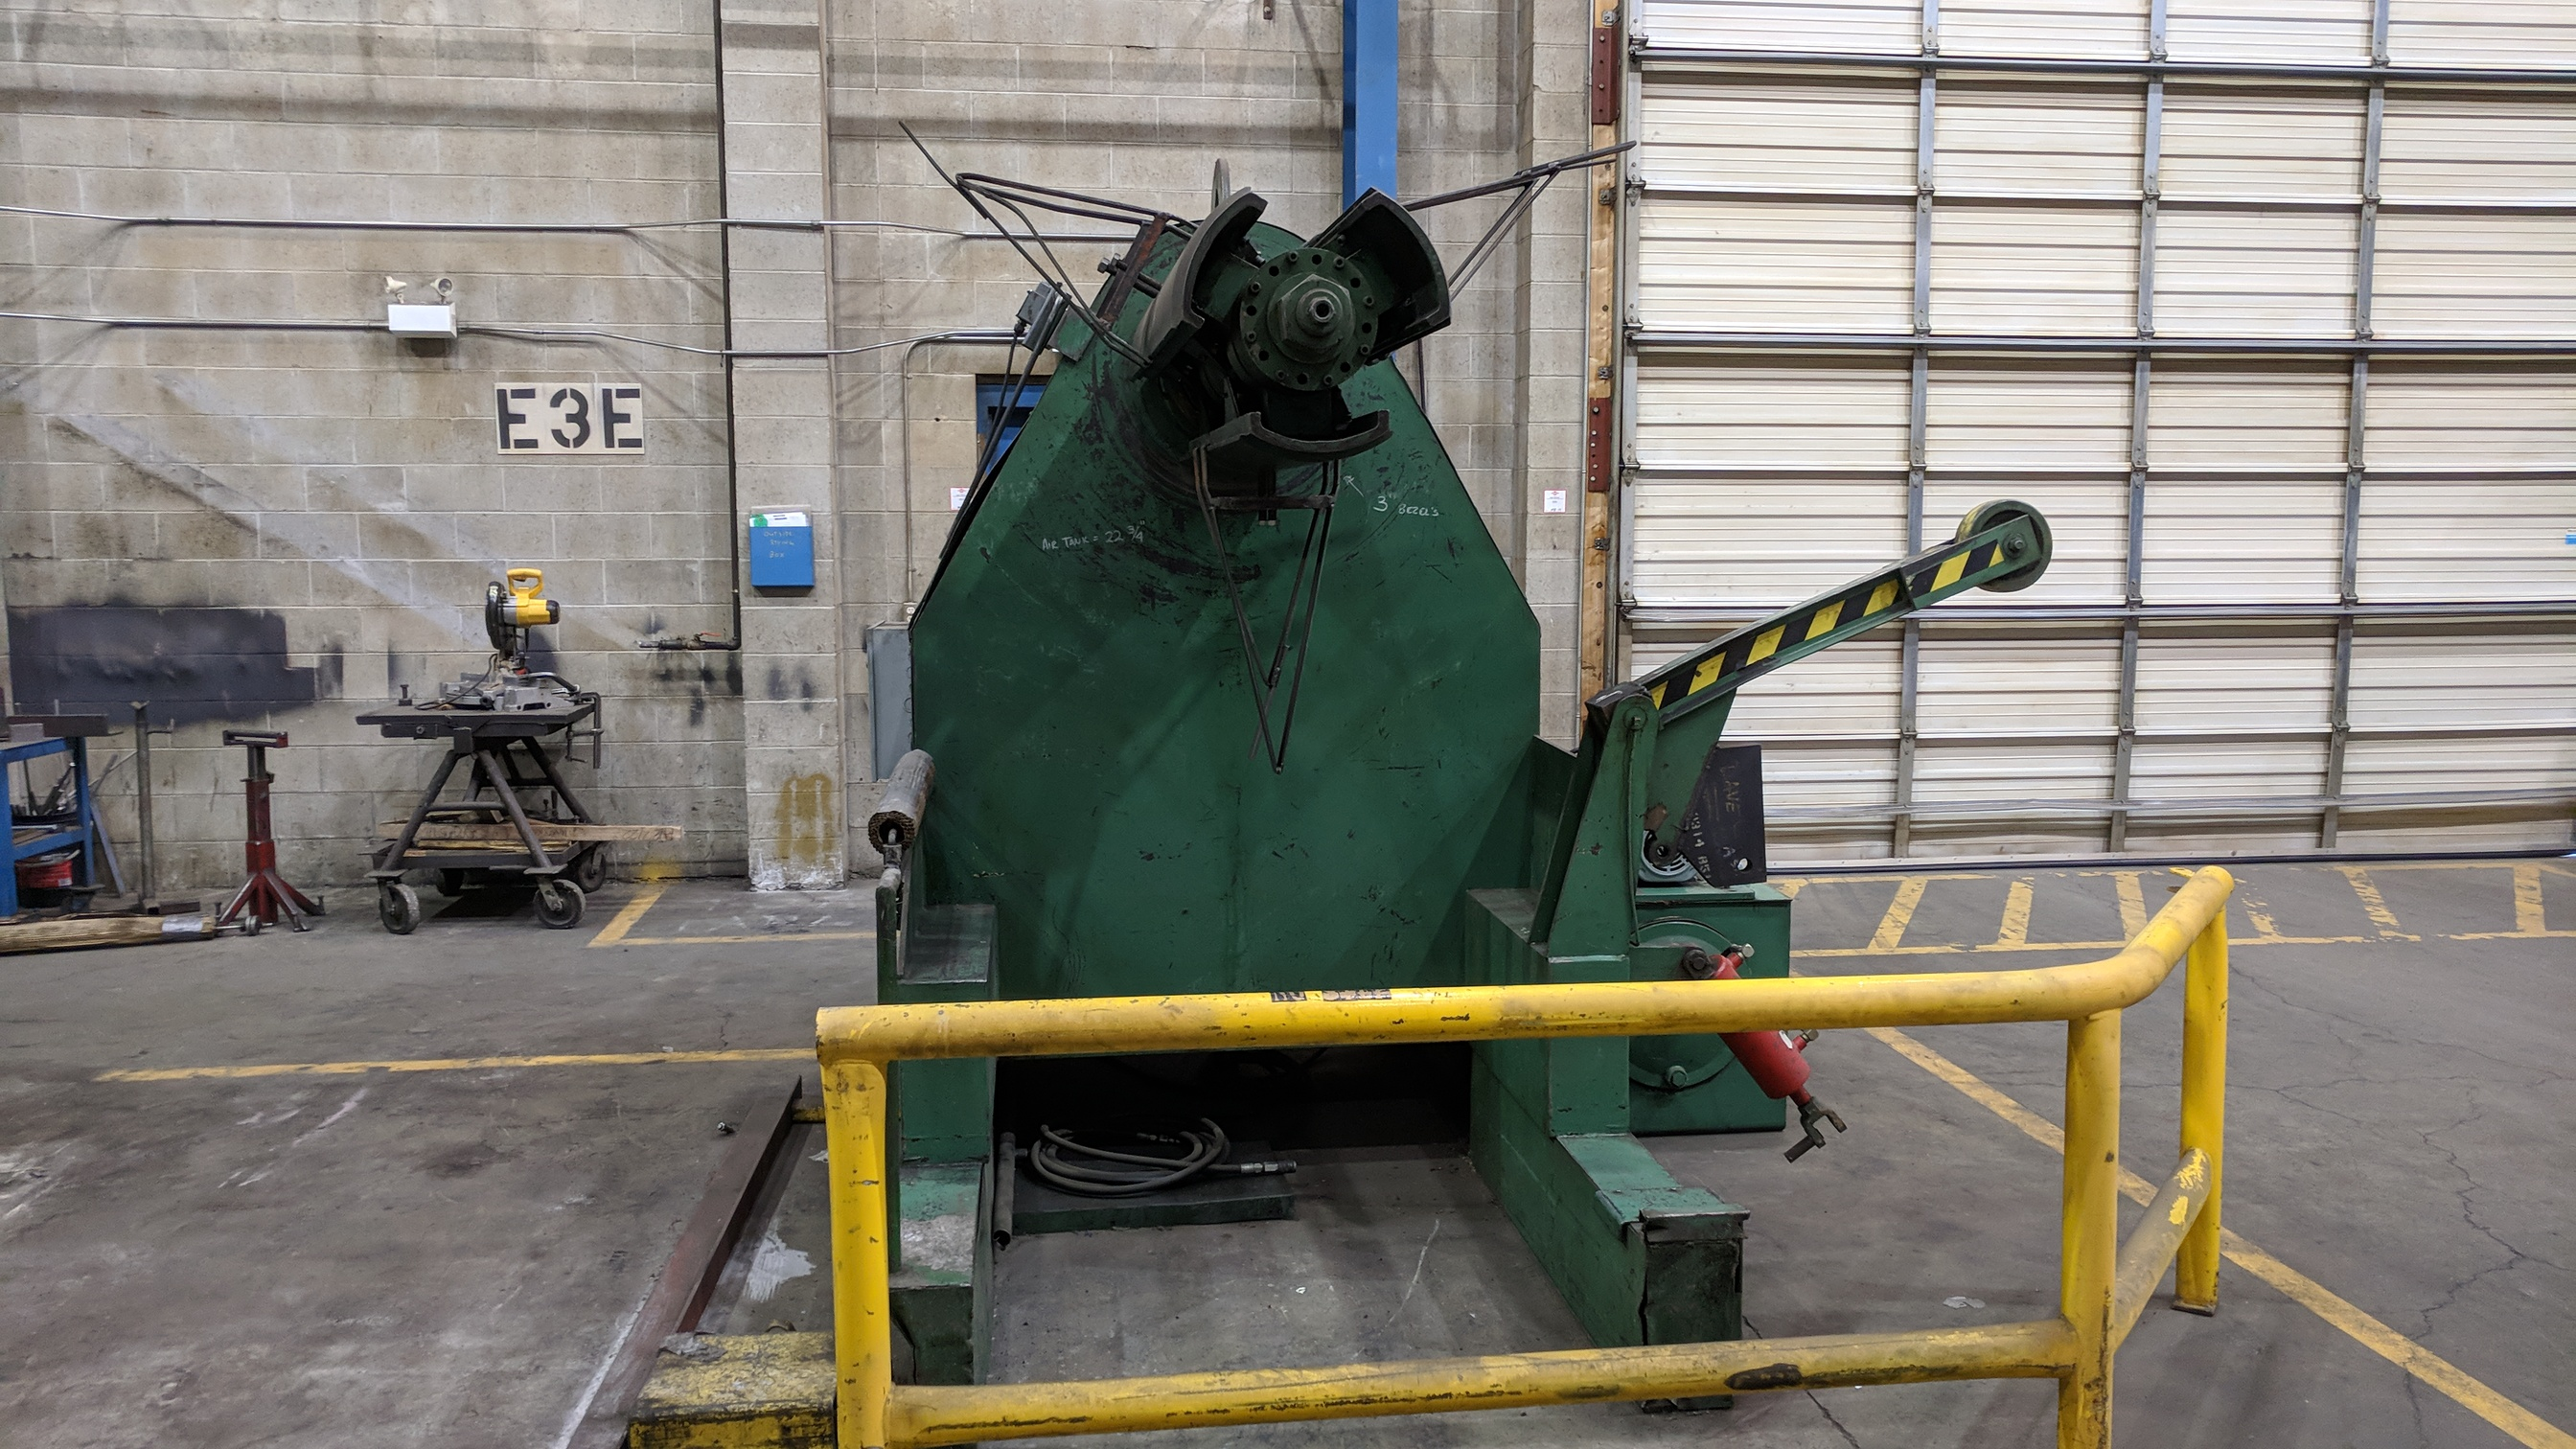 """PRESS LINE PL 1000 48"""" HYDRAULIC POWER UNCOILER, S/N 5608-3/77 (CI) - Image 6 of 6"""